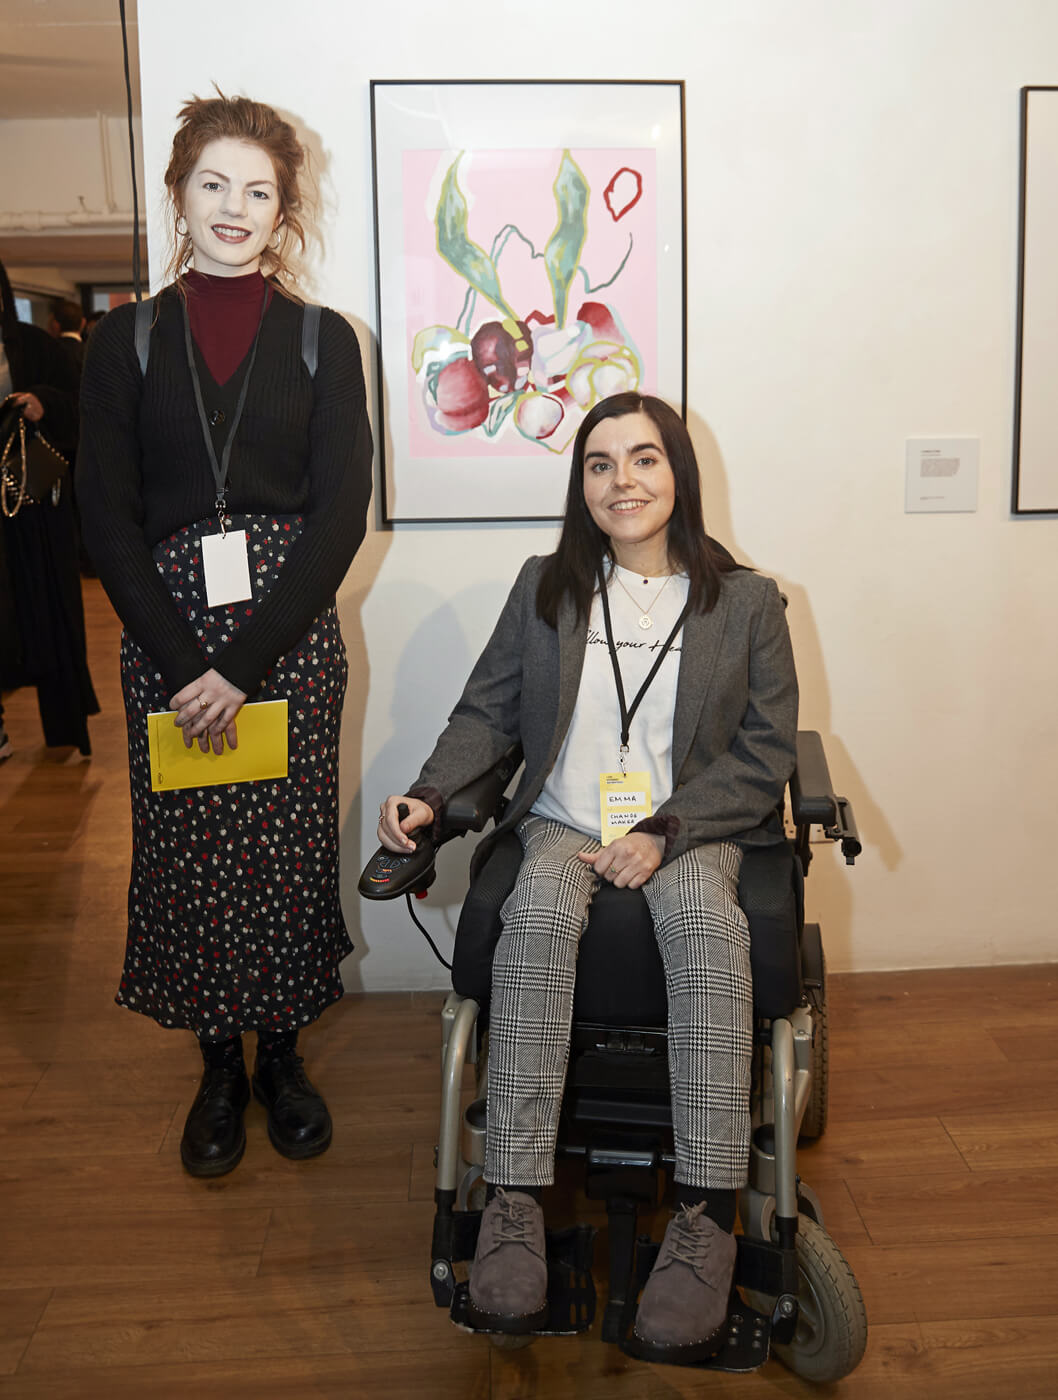 Emma sitting in her wheelchair while artist, Rachel Clarke stands beside her. Behind them is the painting Rachel created to represent Emma.